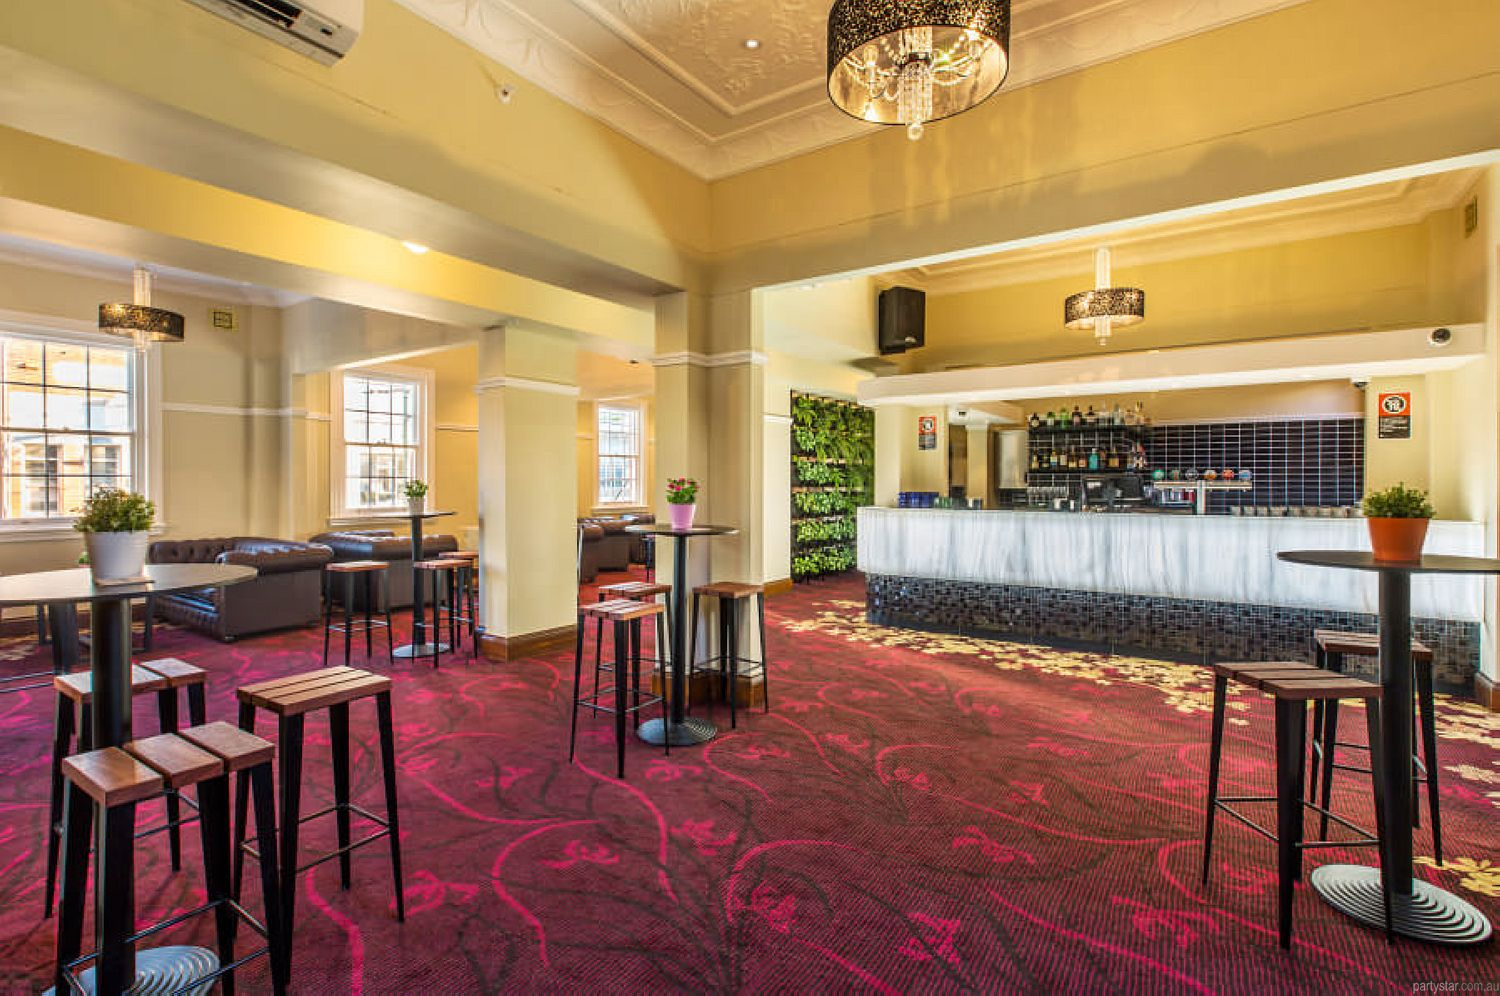 Crows Nest Hotel, Crows Nest, NSW. Function Room hire photo #1